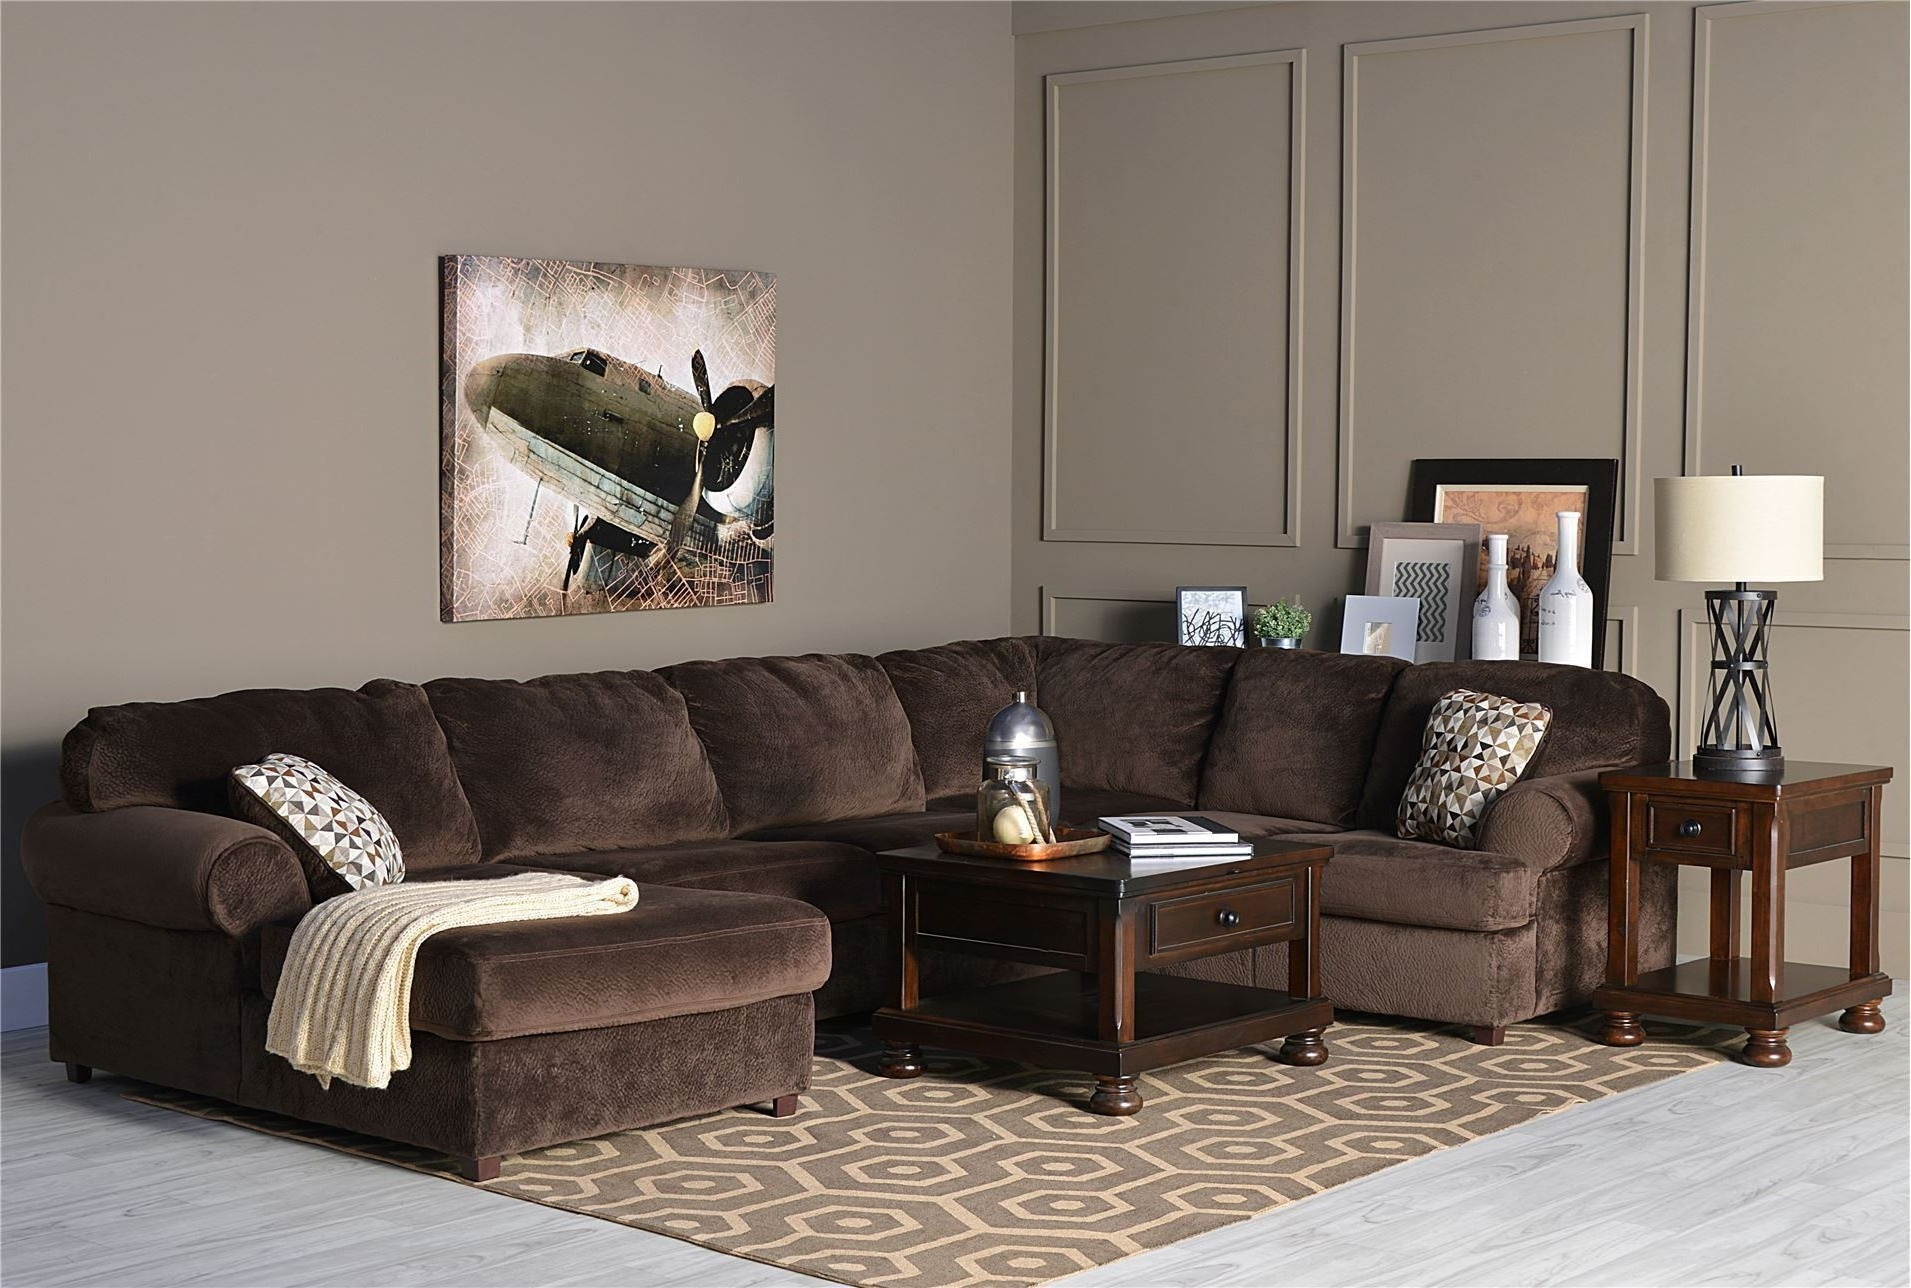 Most Popular Sofa: 3 Piece Sectional Sofa. Small Couch With Chaise (View 10 of 15)